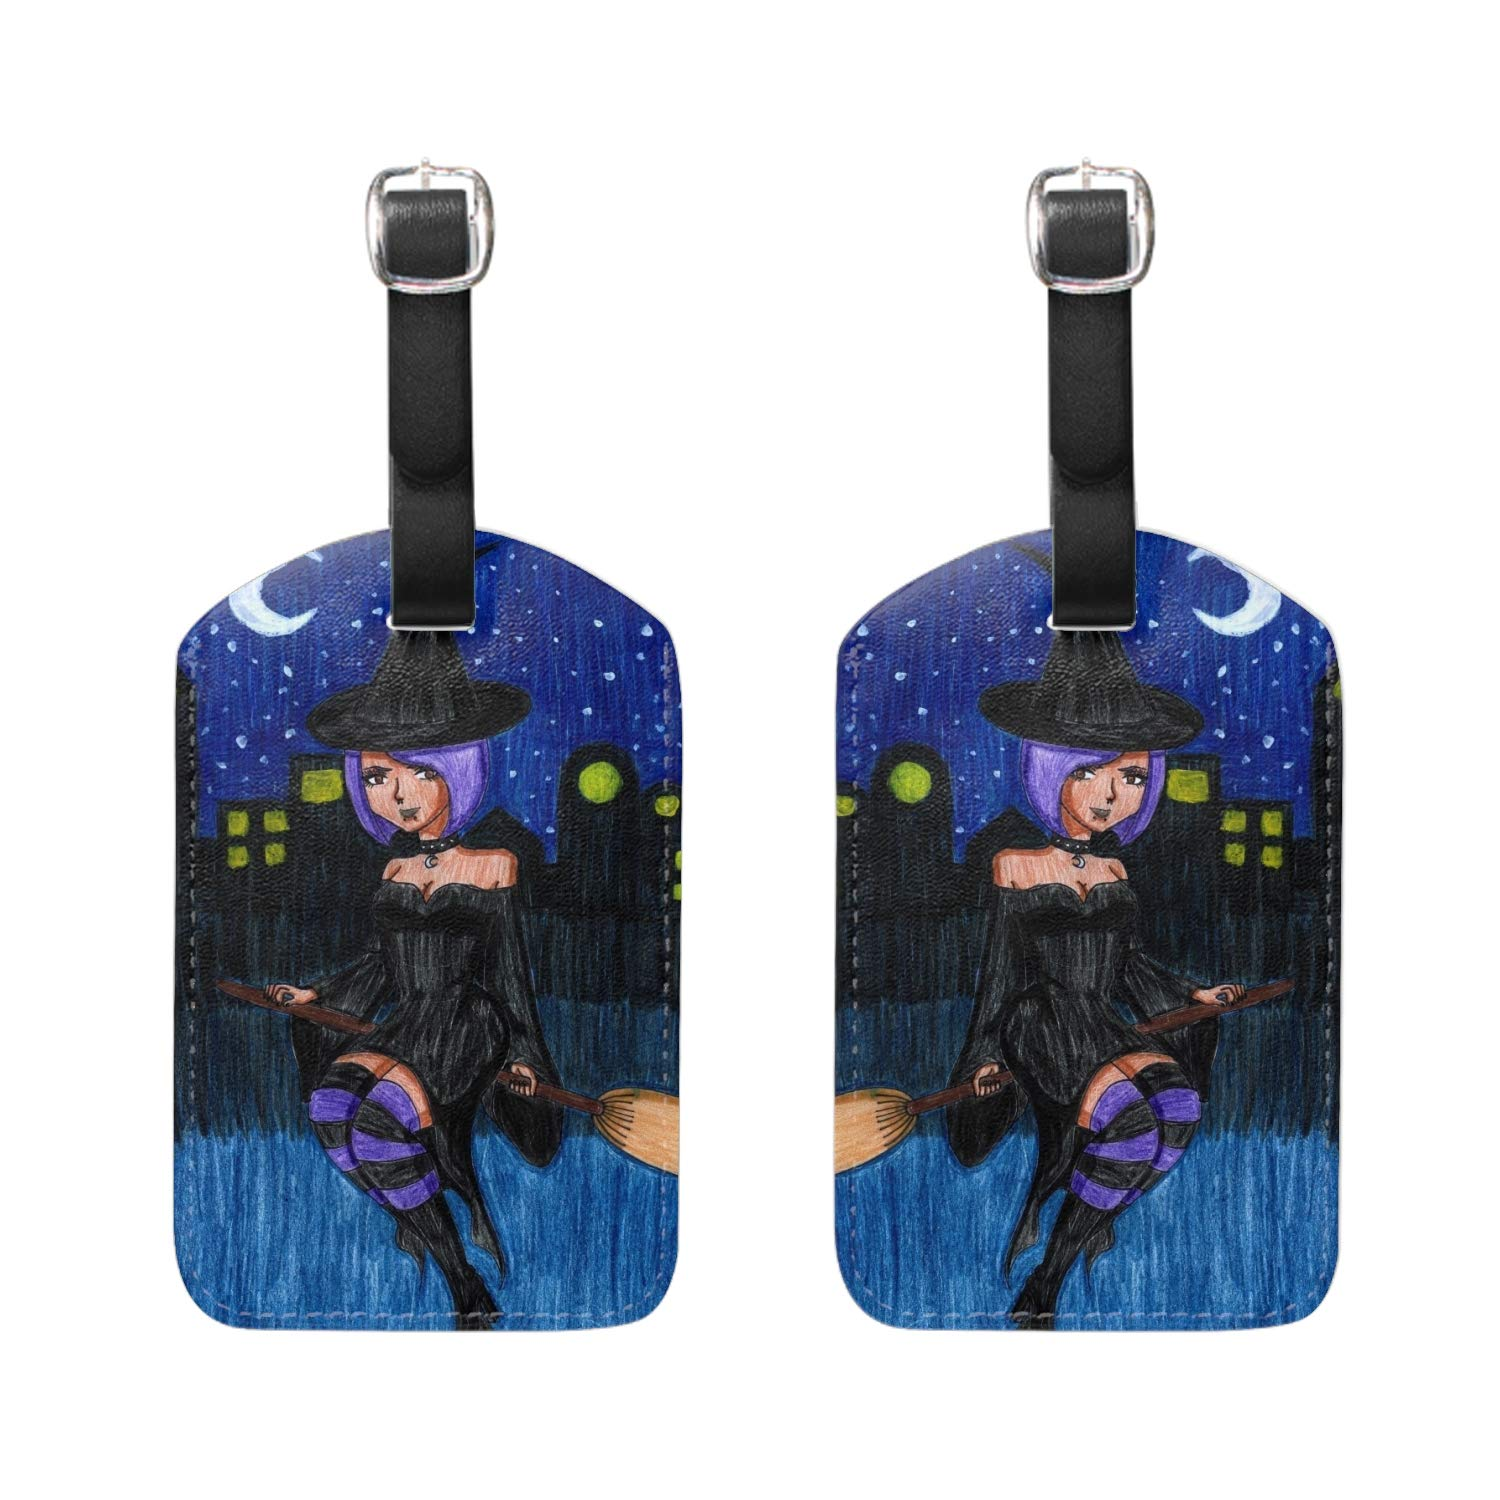 Animal Party Print Luggage Identifiers with Strap Closure